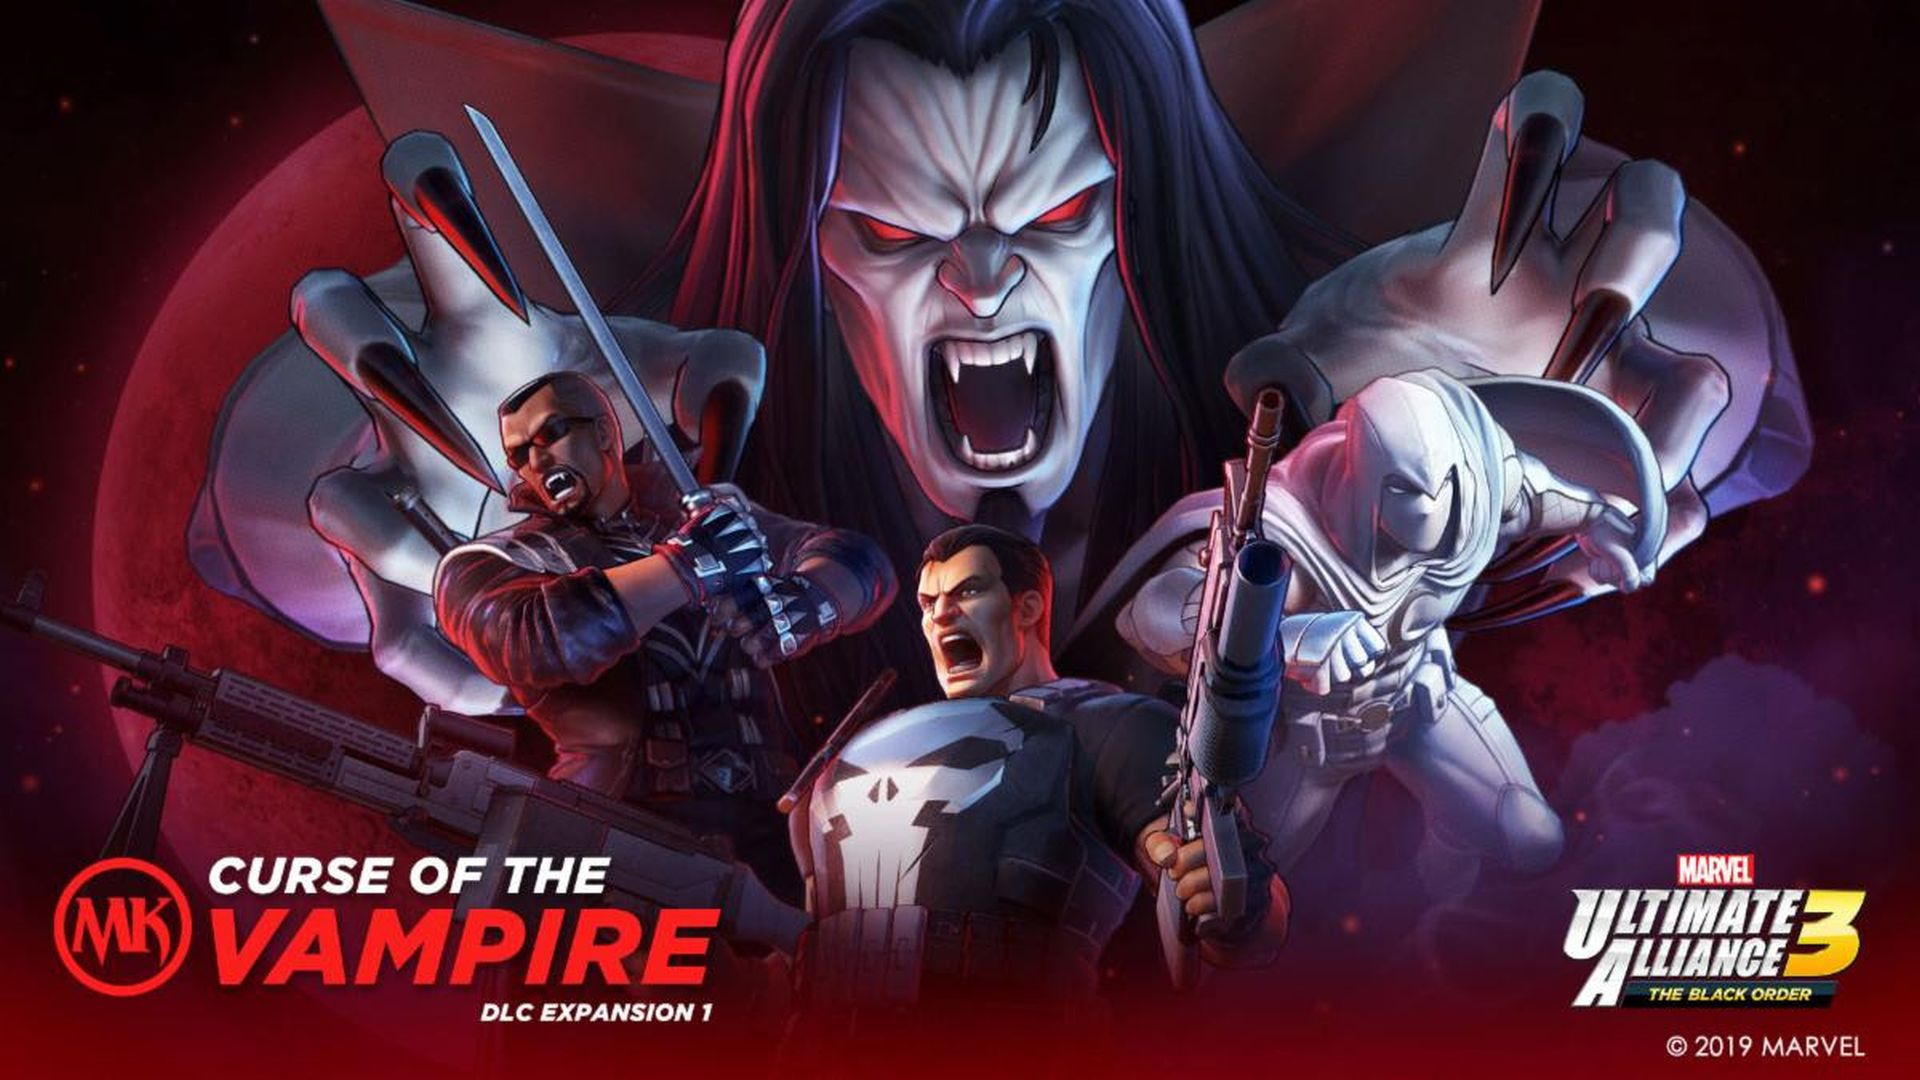 Marvel Ultimate Alliance 3 Gets A Free Update And Dlc Pack 1 Drops